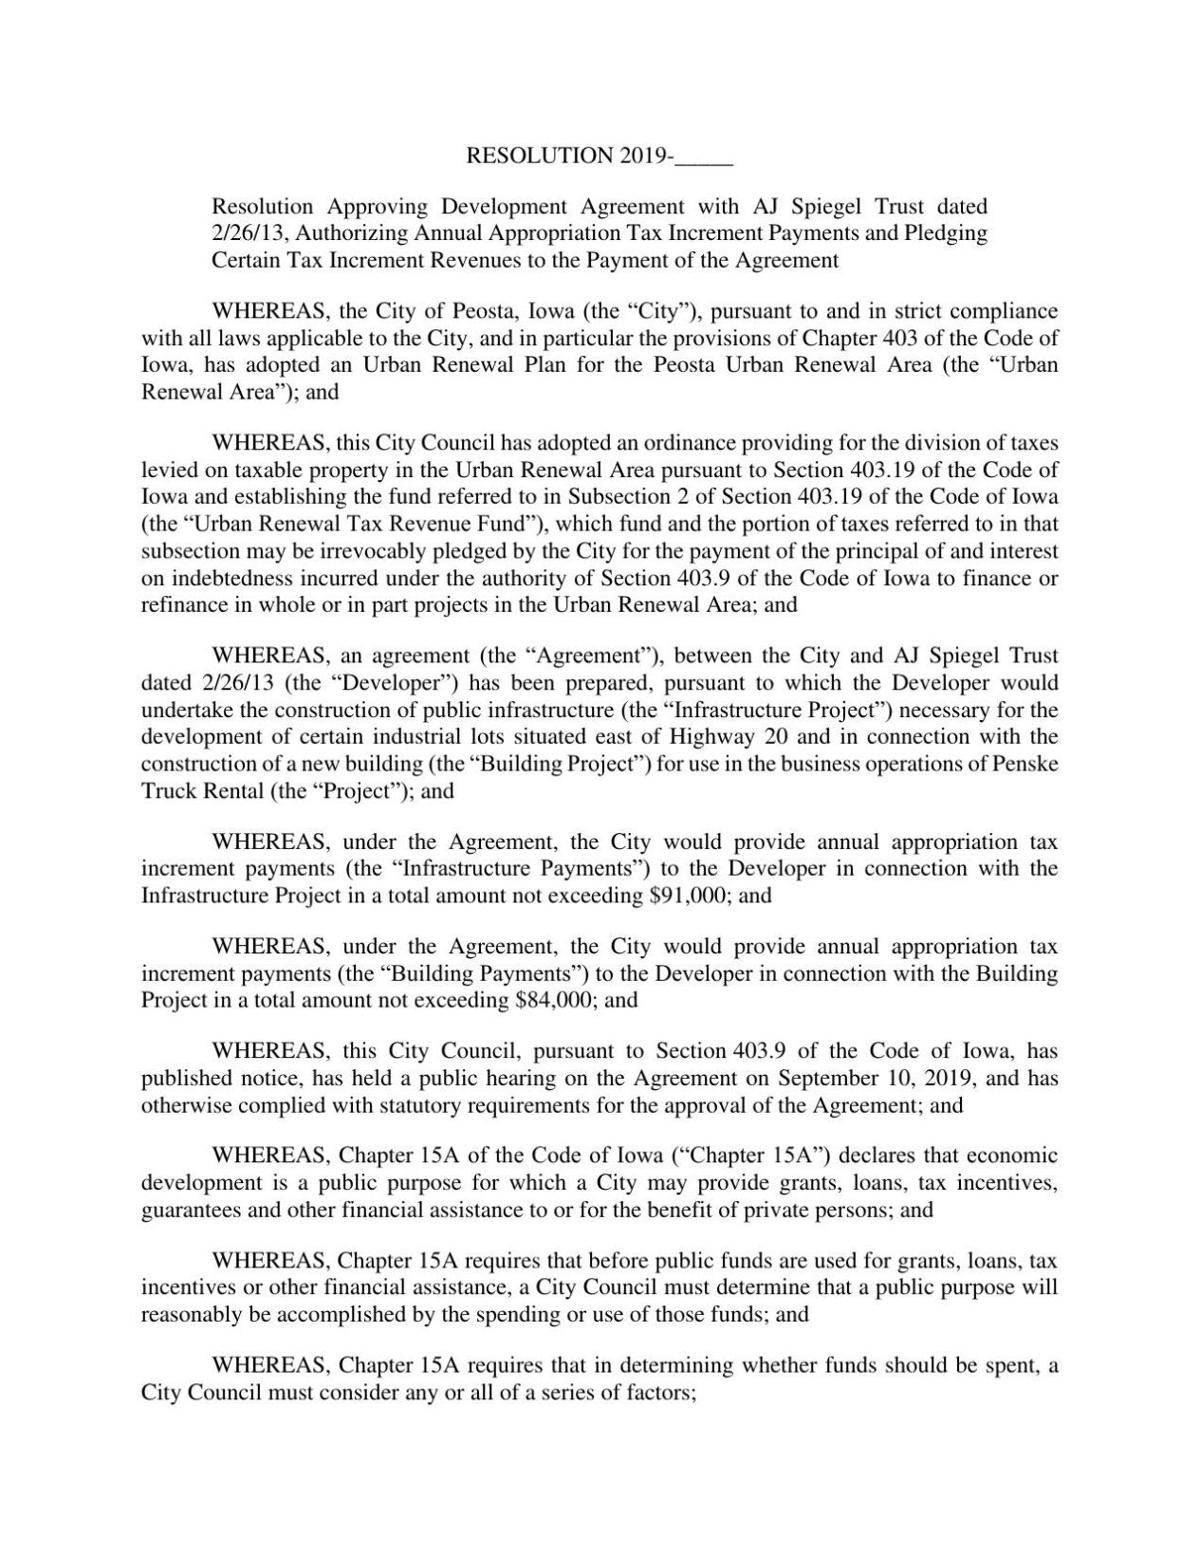 Resolution Approving Development Agreement with AJ Spiegel Trust dated 2/26/13